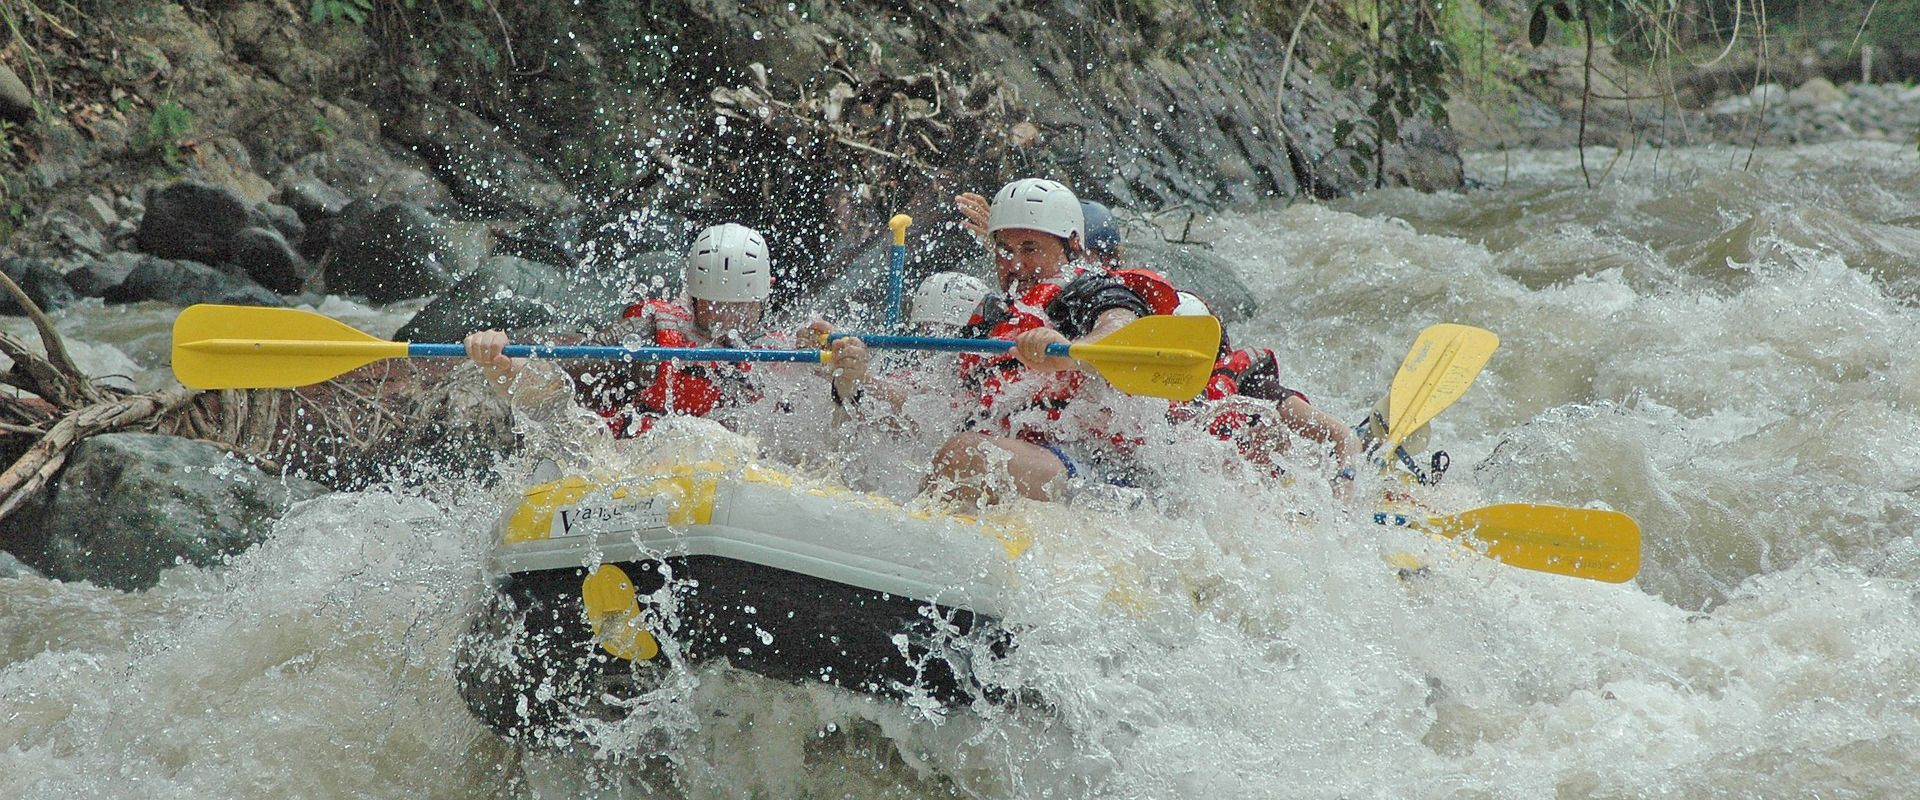 Rafting aude - Fun